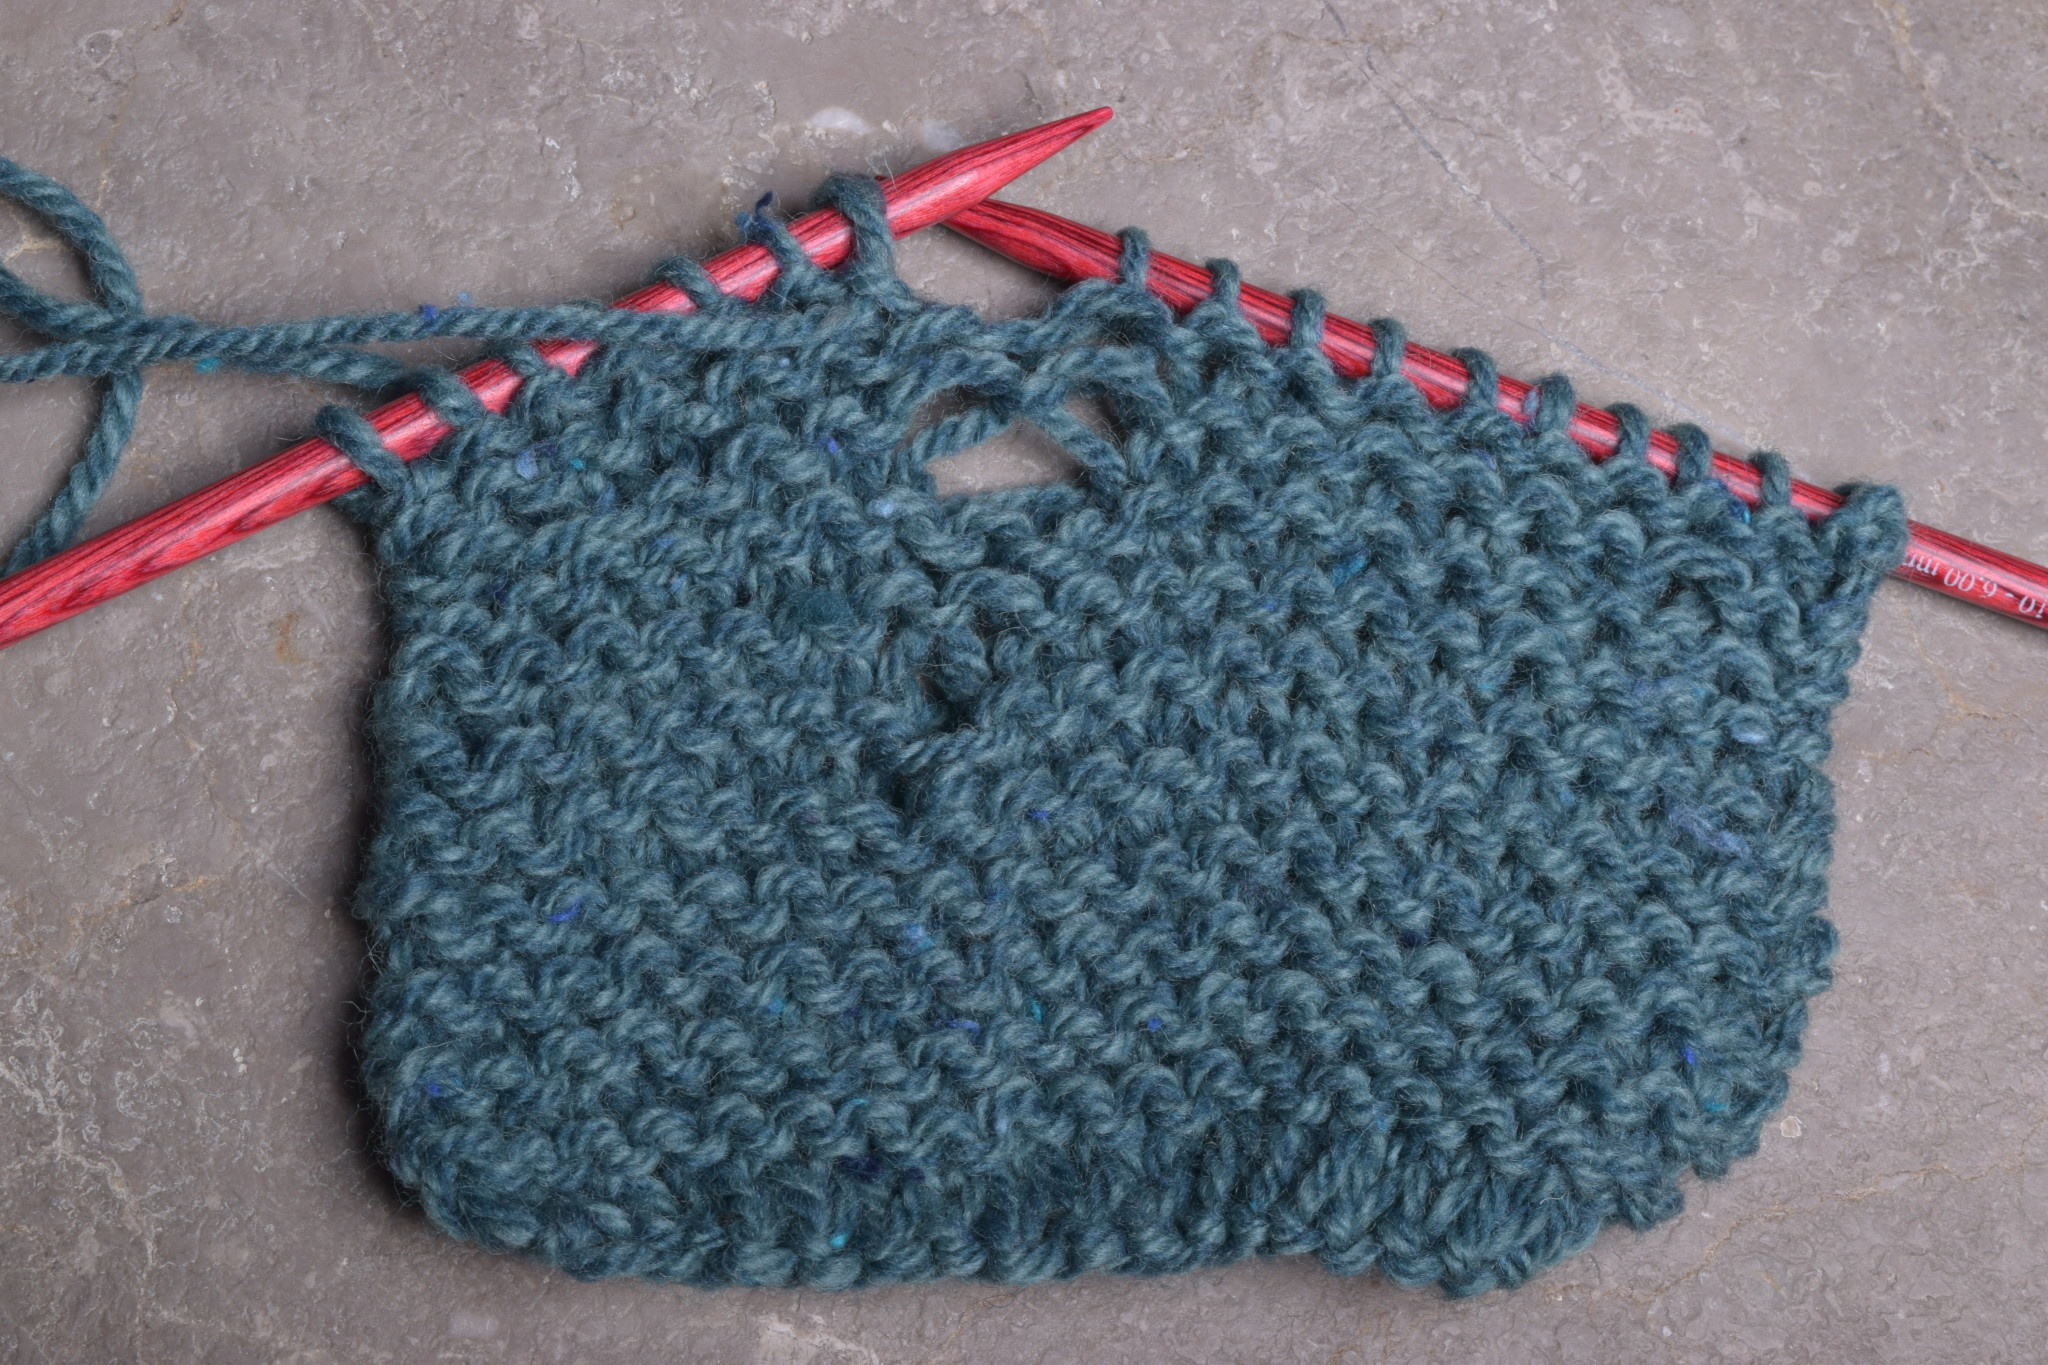 Fixing Knitting Mistakes; Thursday, May 2;  6:00-8:00PM